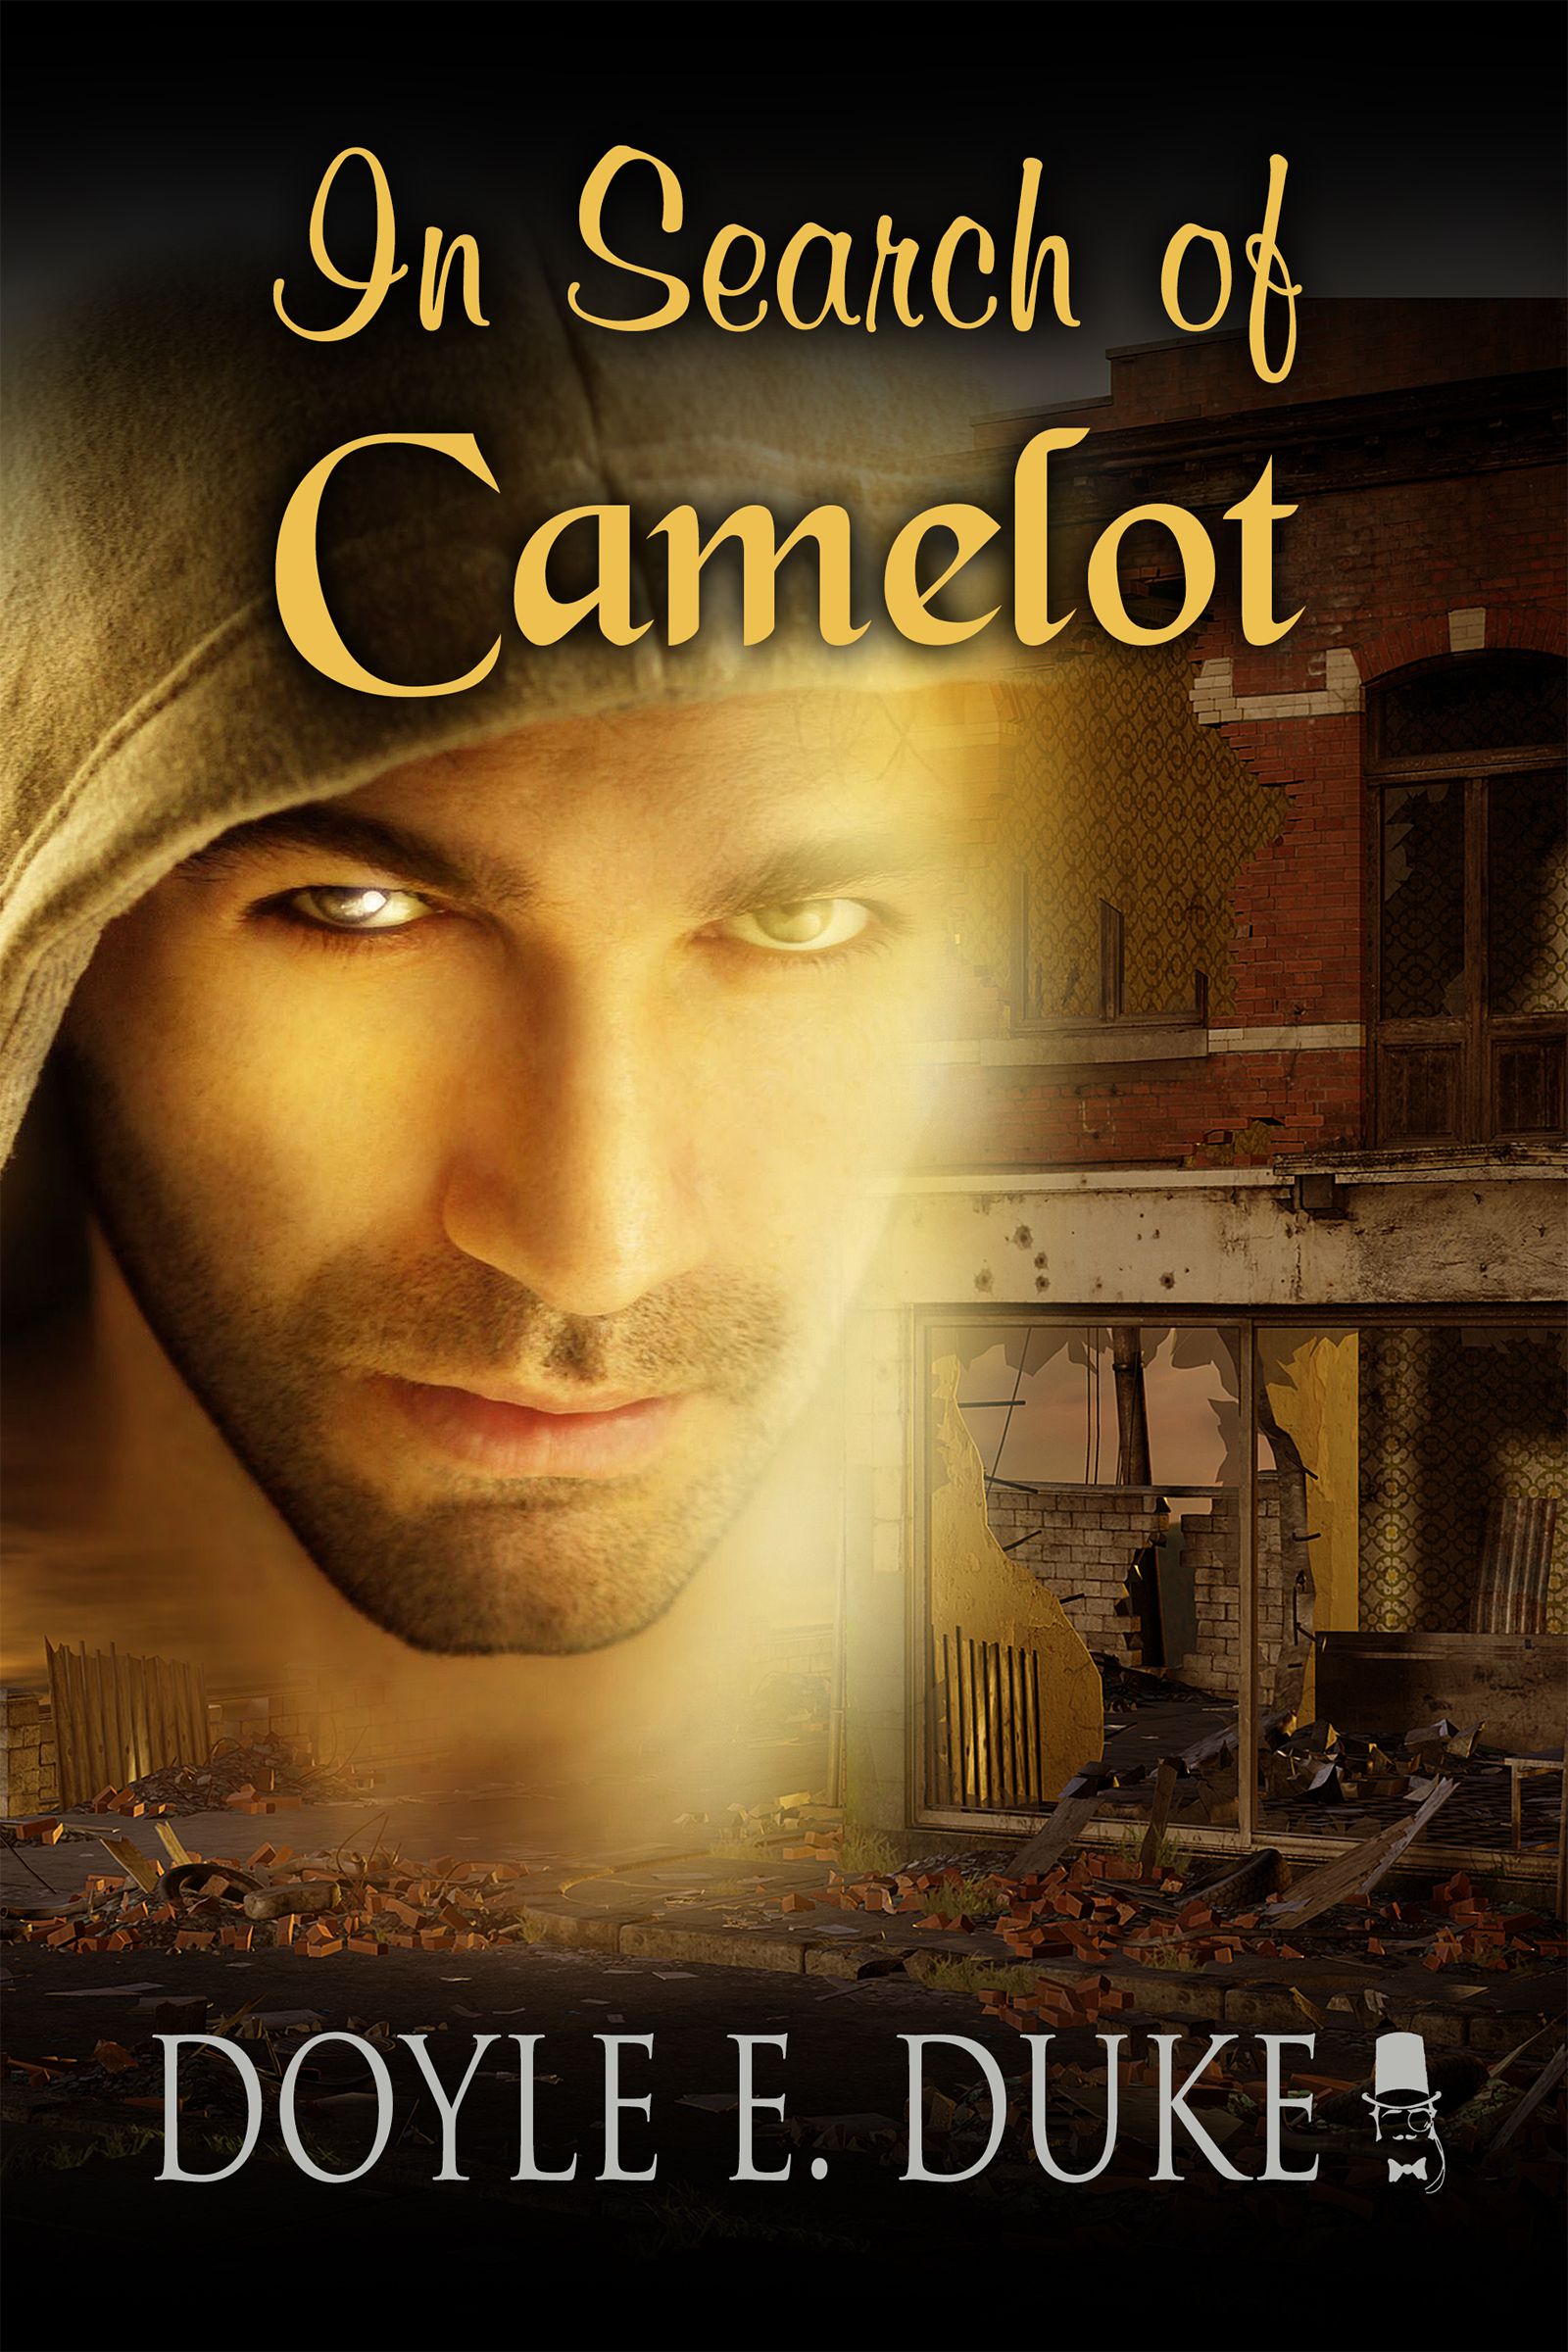 in search of camelot, doyle duke